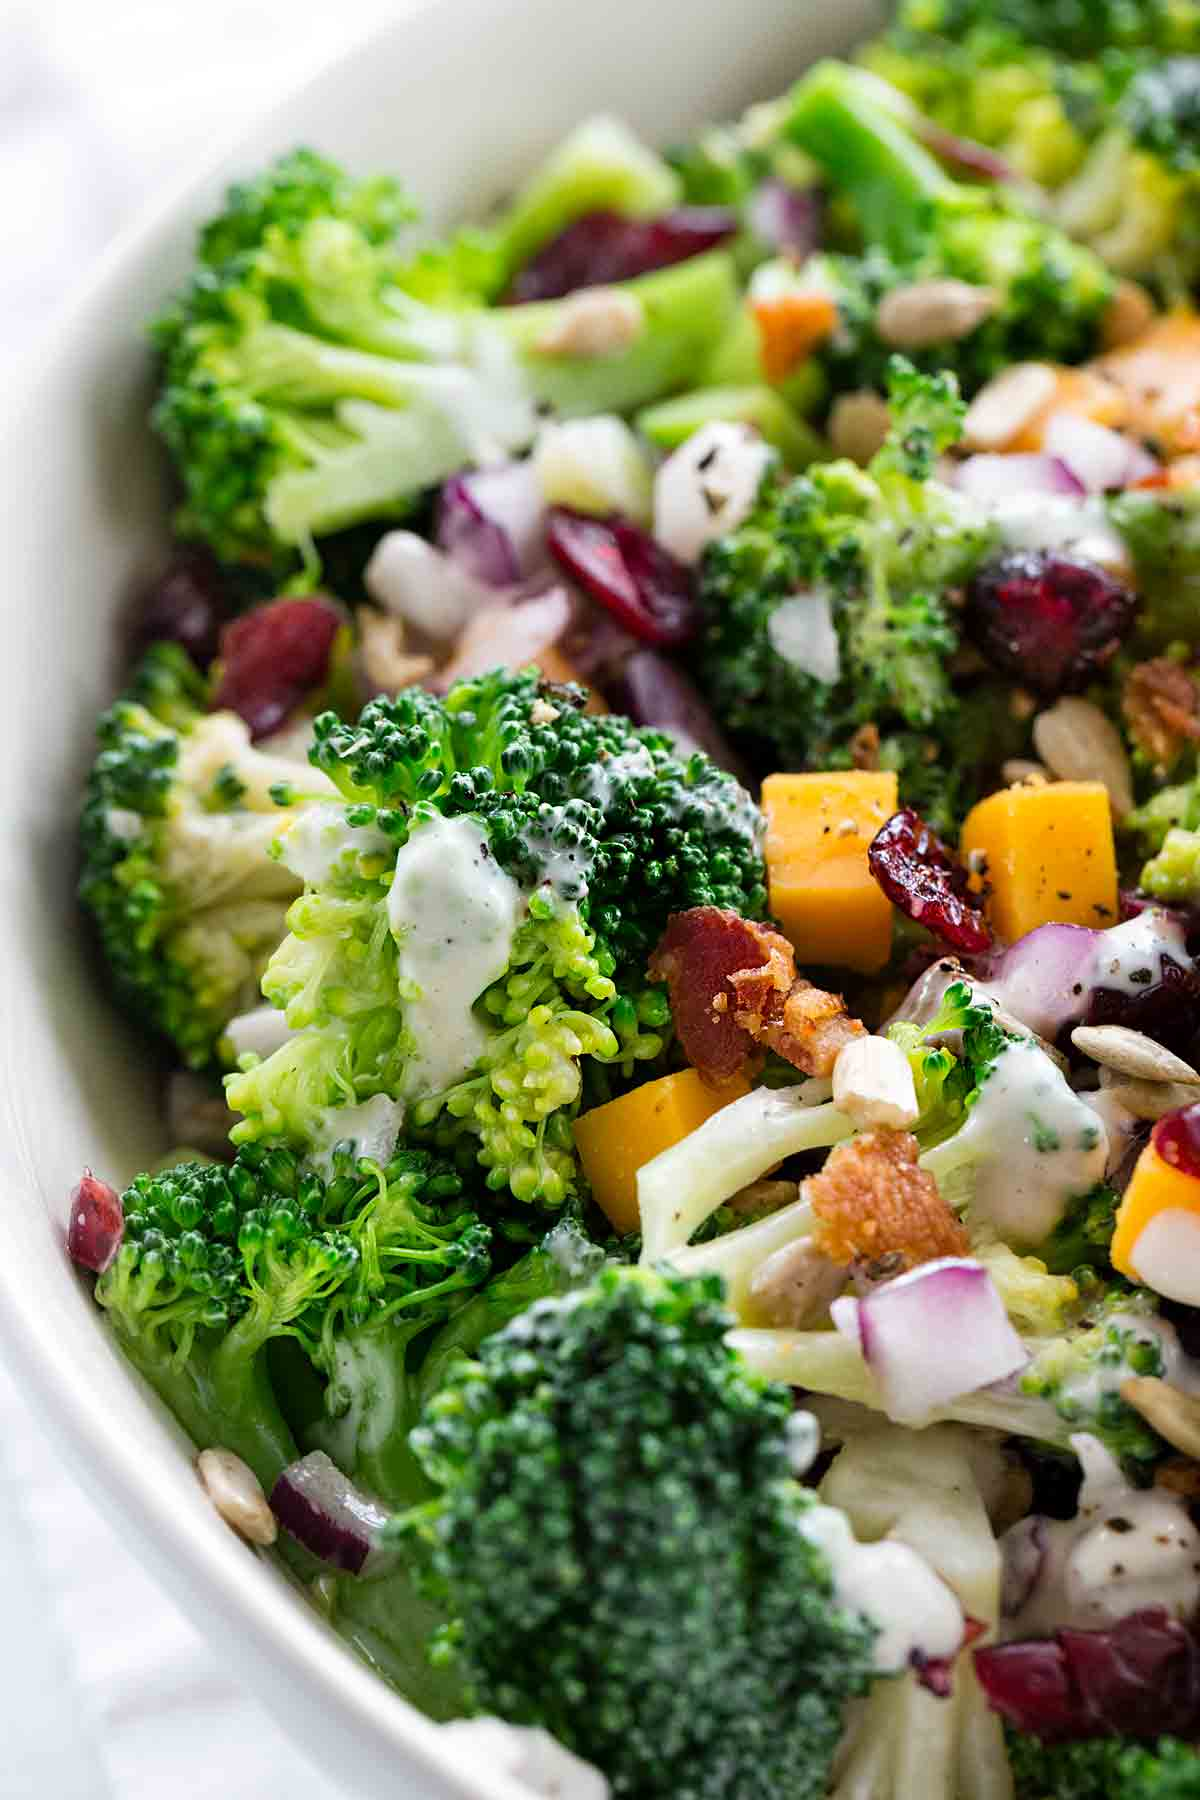 Close up view of broccoli salad with creamy dressing